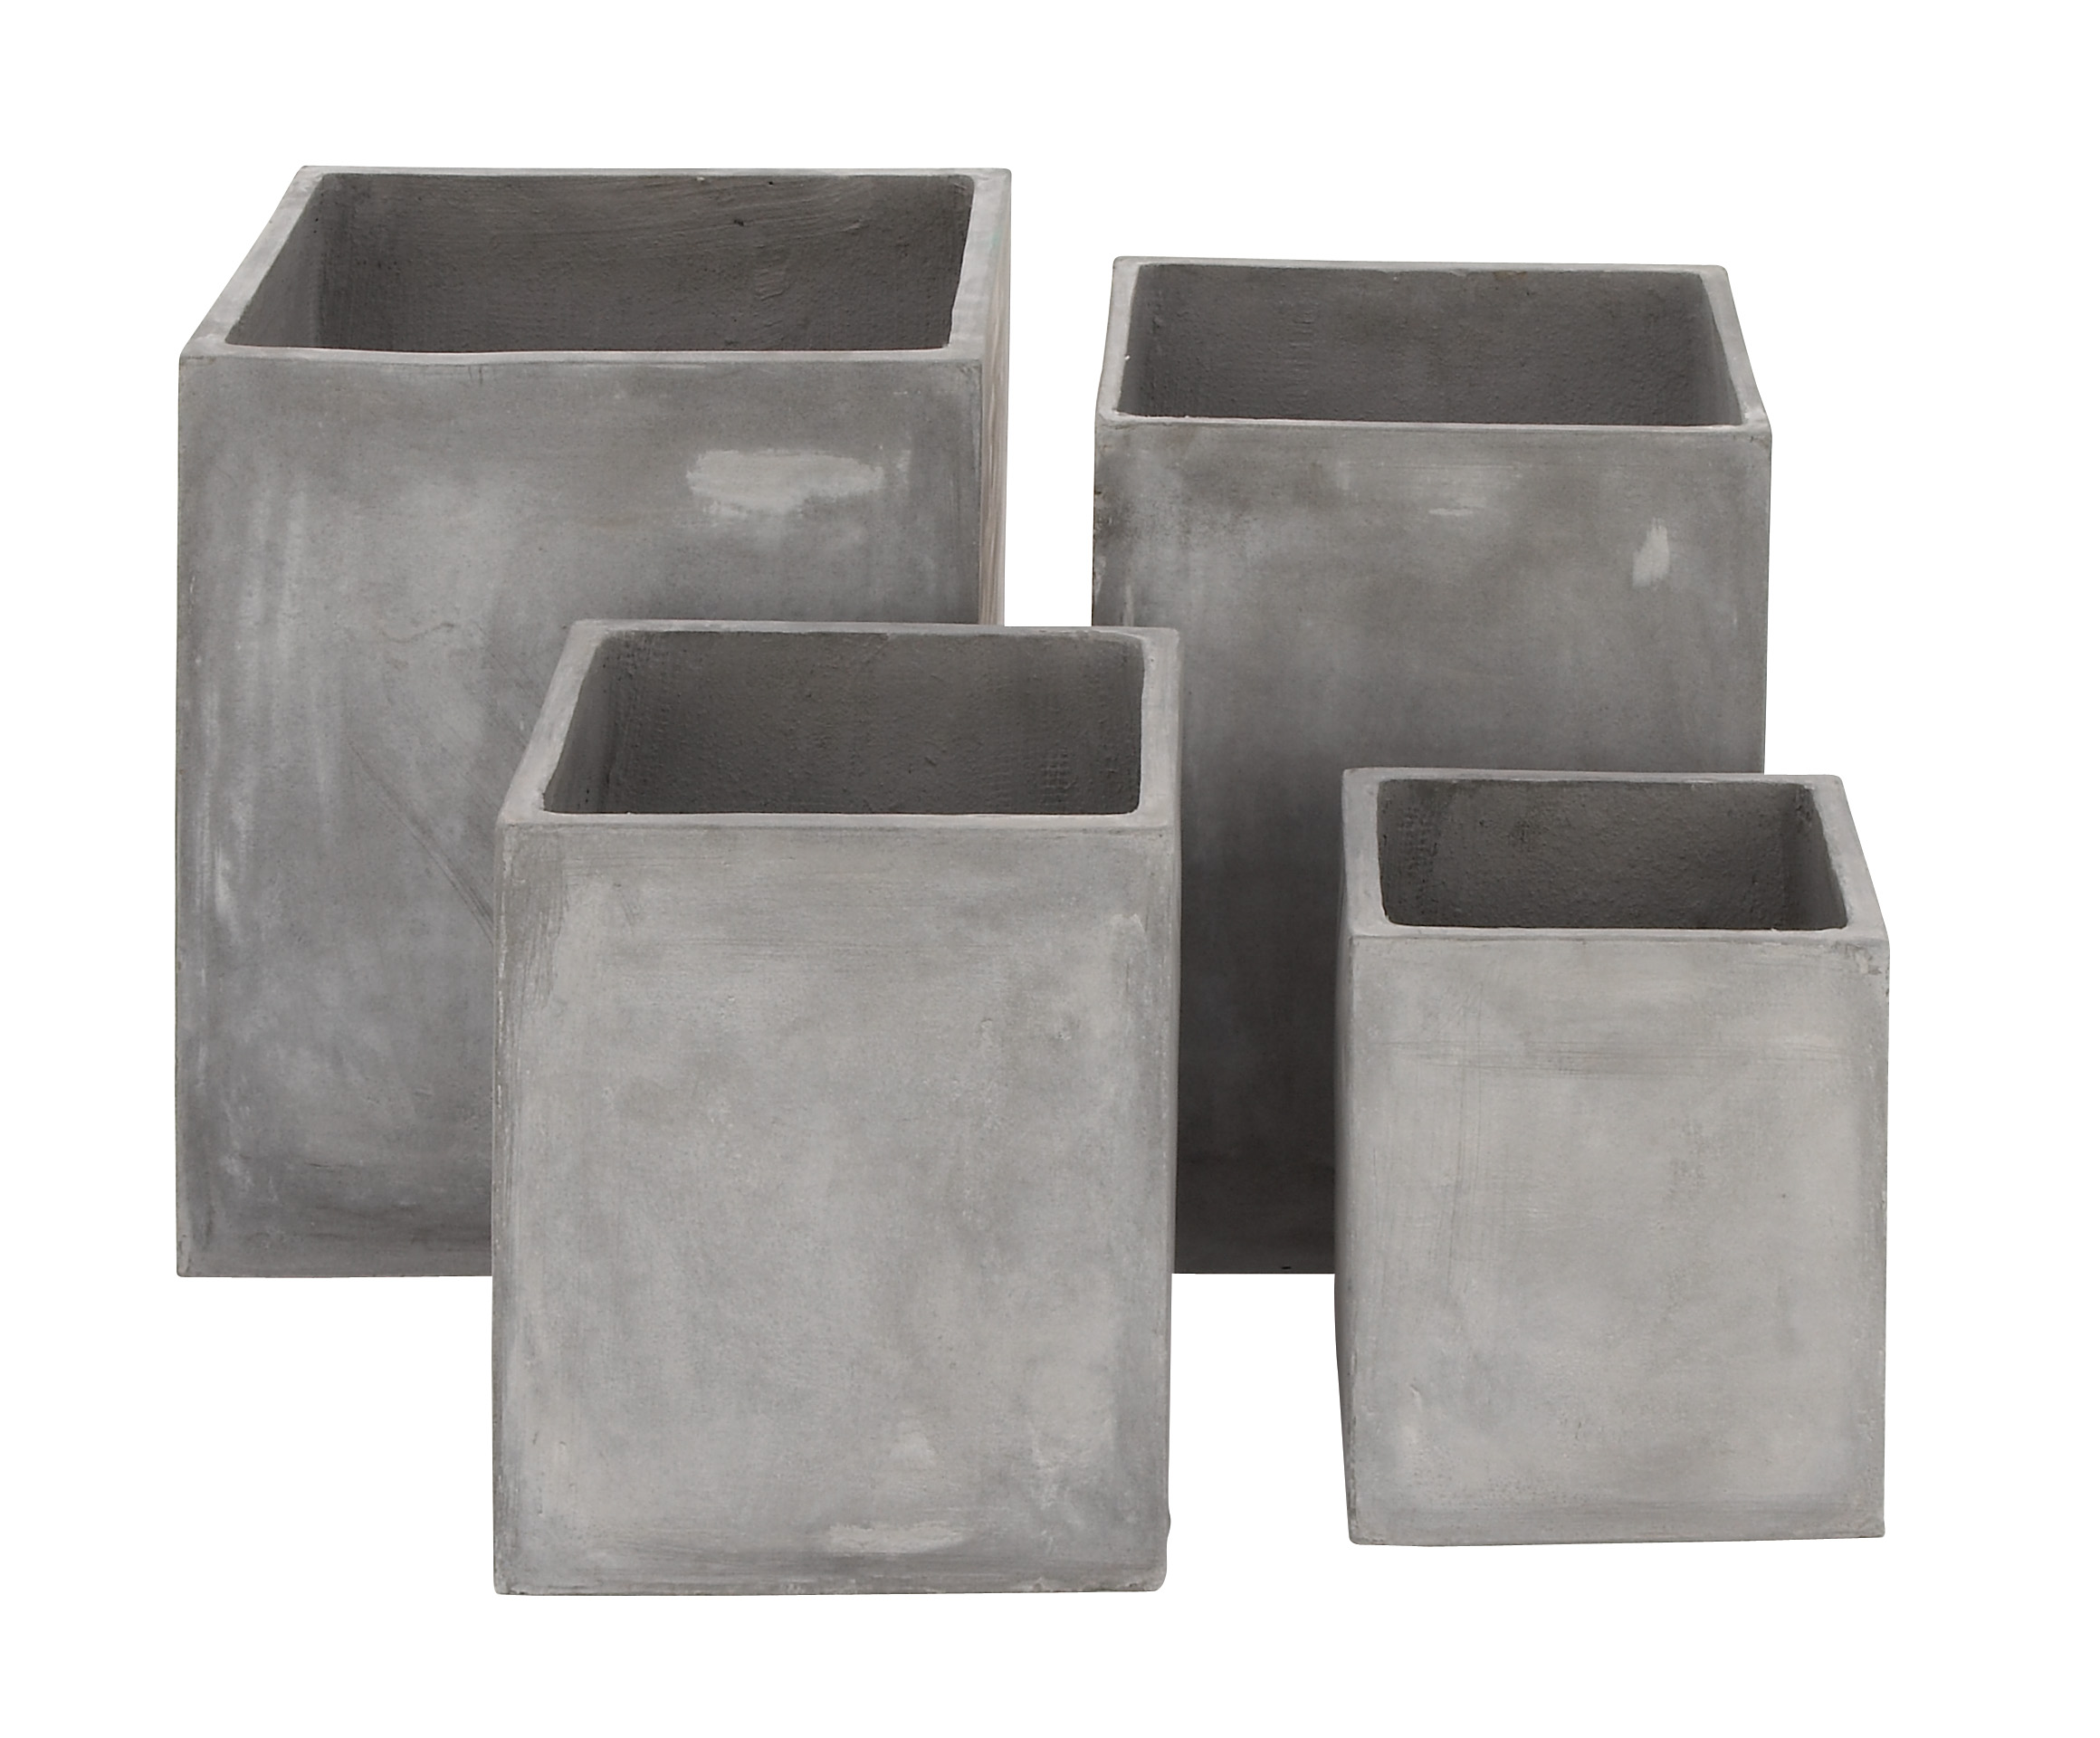 Decmode Set of 4 Square Fiber Clay Planters, Gray by DecMode